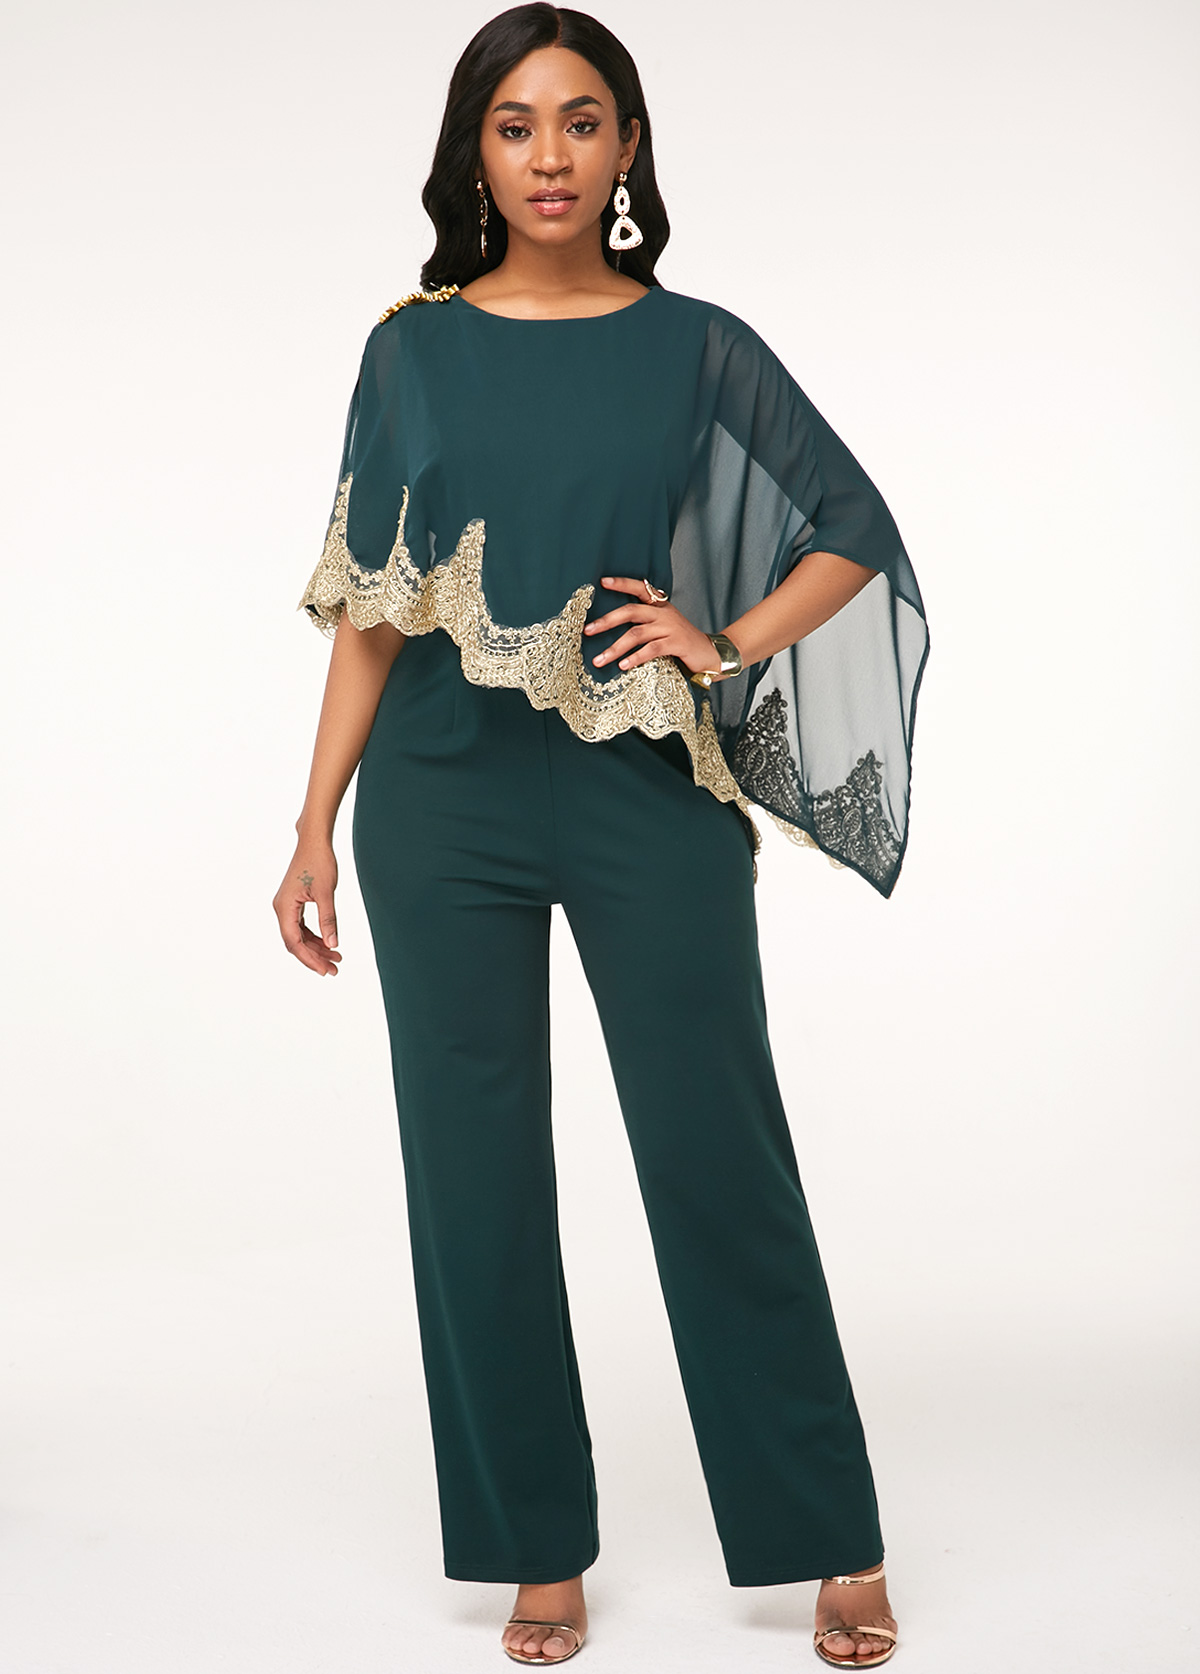 Cape Sleeve Lace Panel Green Jumpsuit